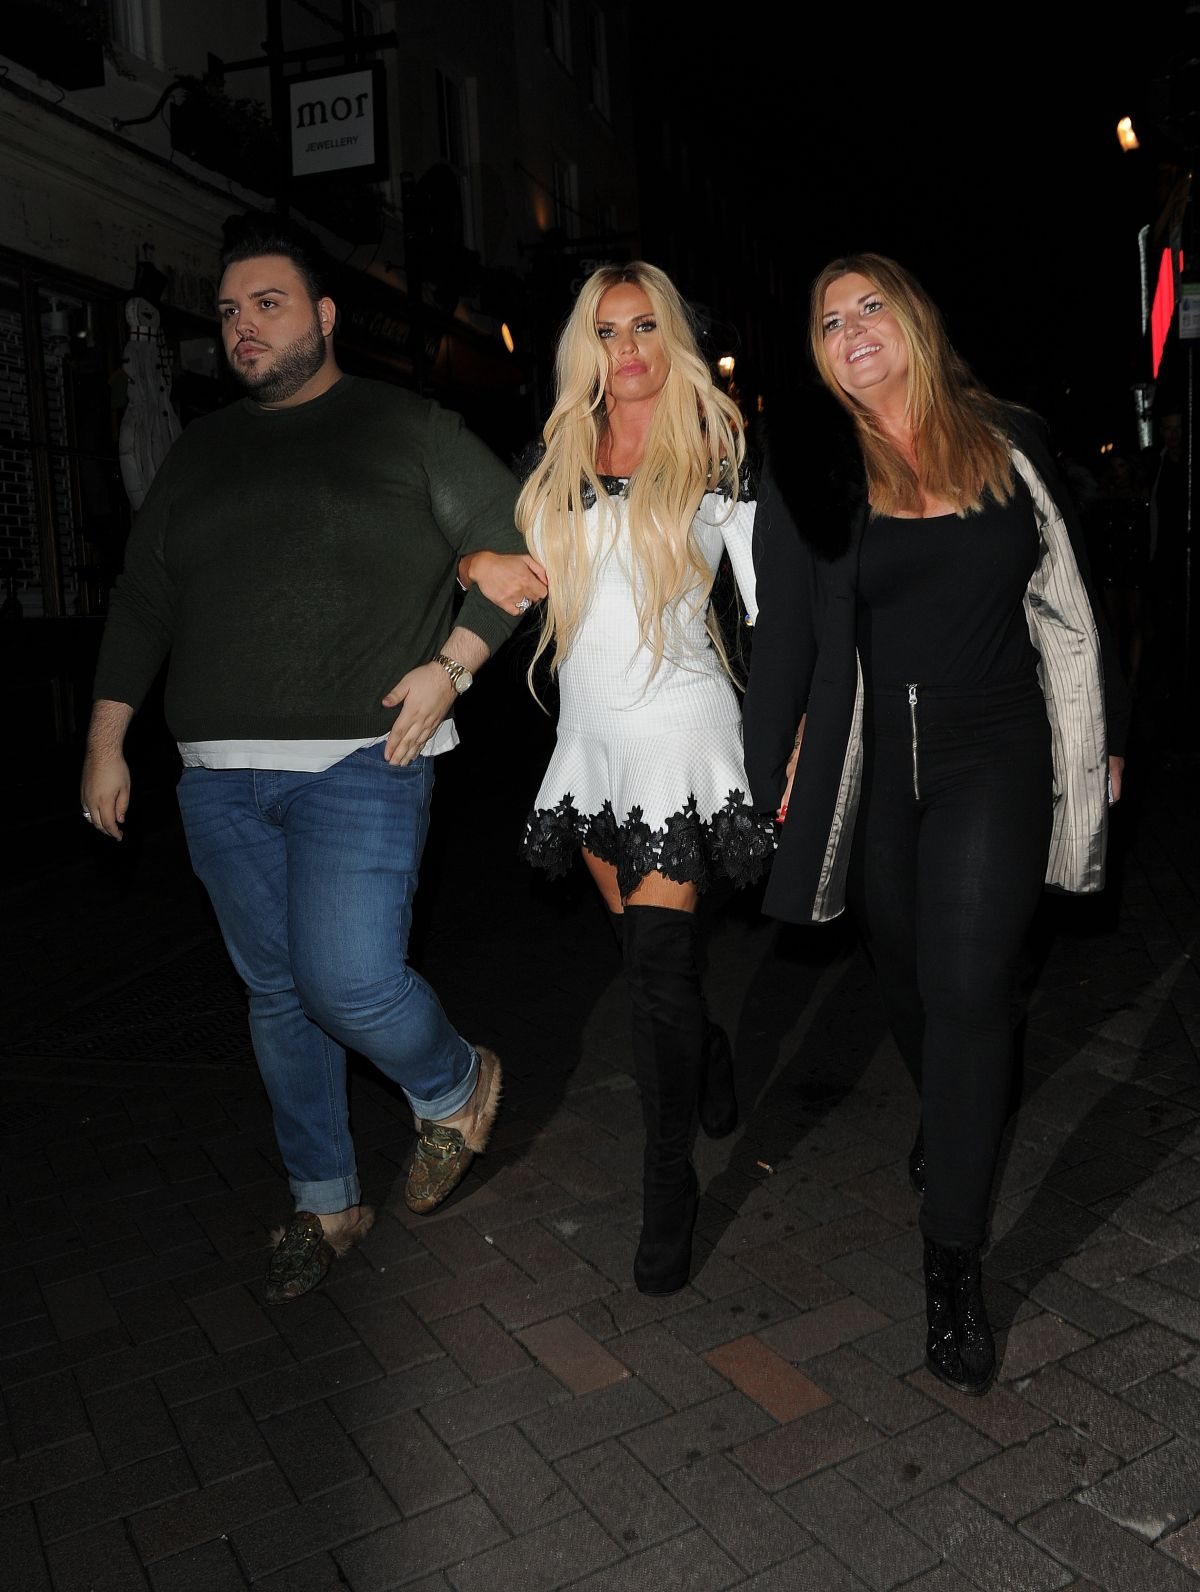 Katie Price Out for the evening in London   katie-price-out-for-the-evening-in-london_15